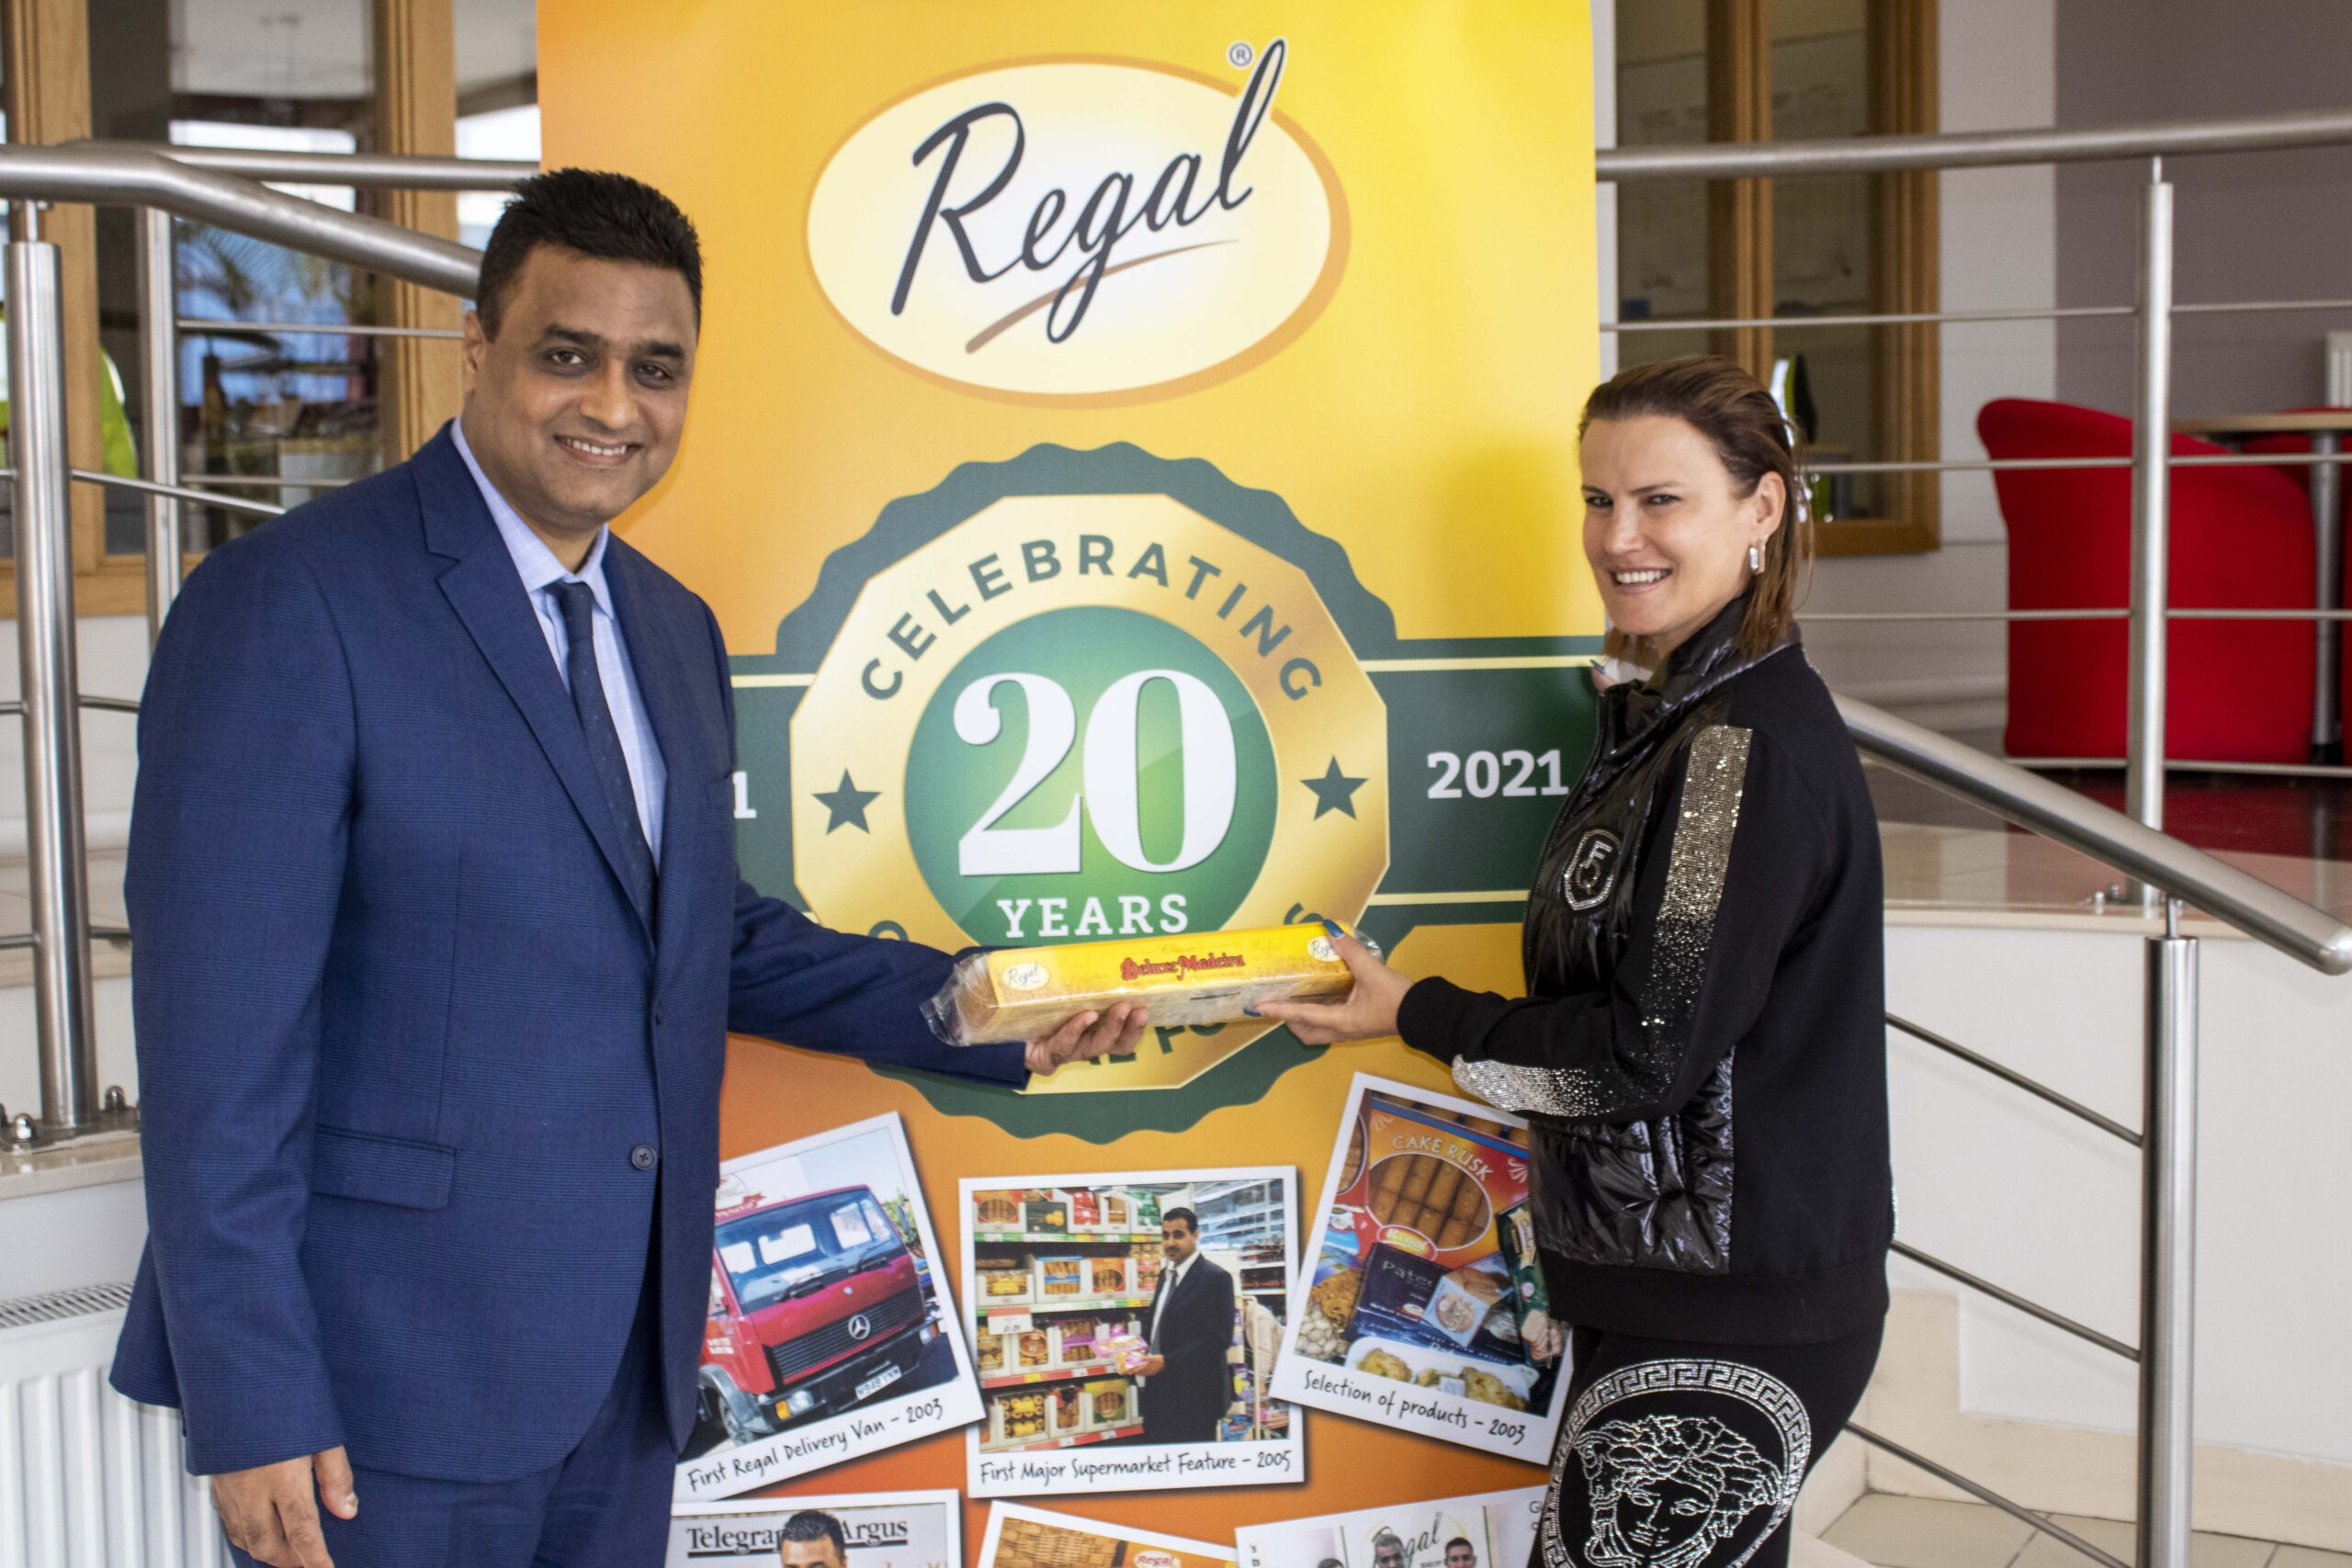 Elma Aveiro – entrepreneur and sister to football superstar, Cristiano Ronaldo, visited Regal Foods as part of their 20th anniversary celebrations.